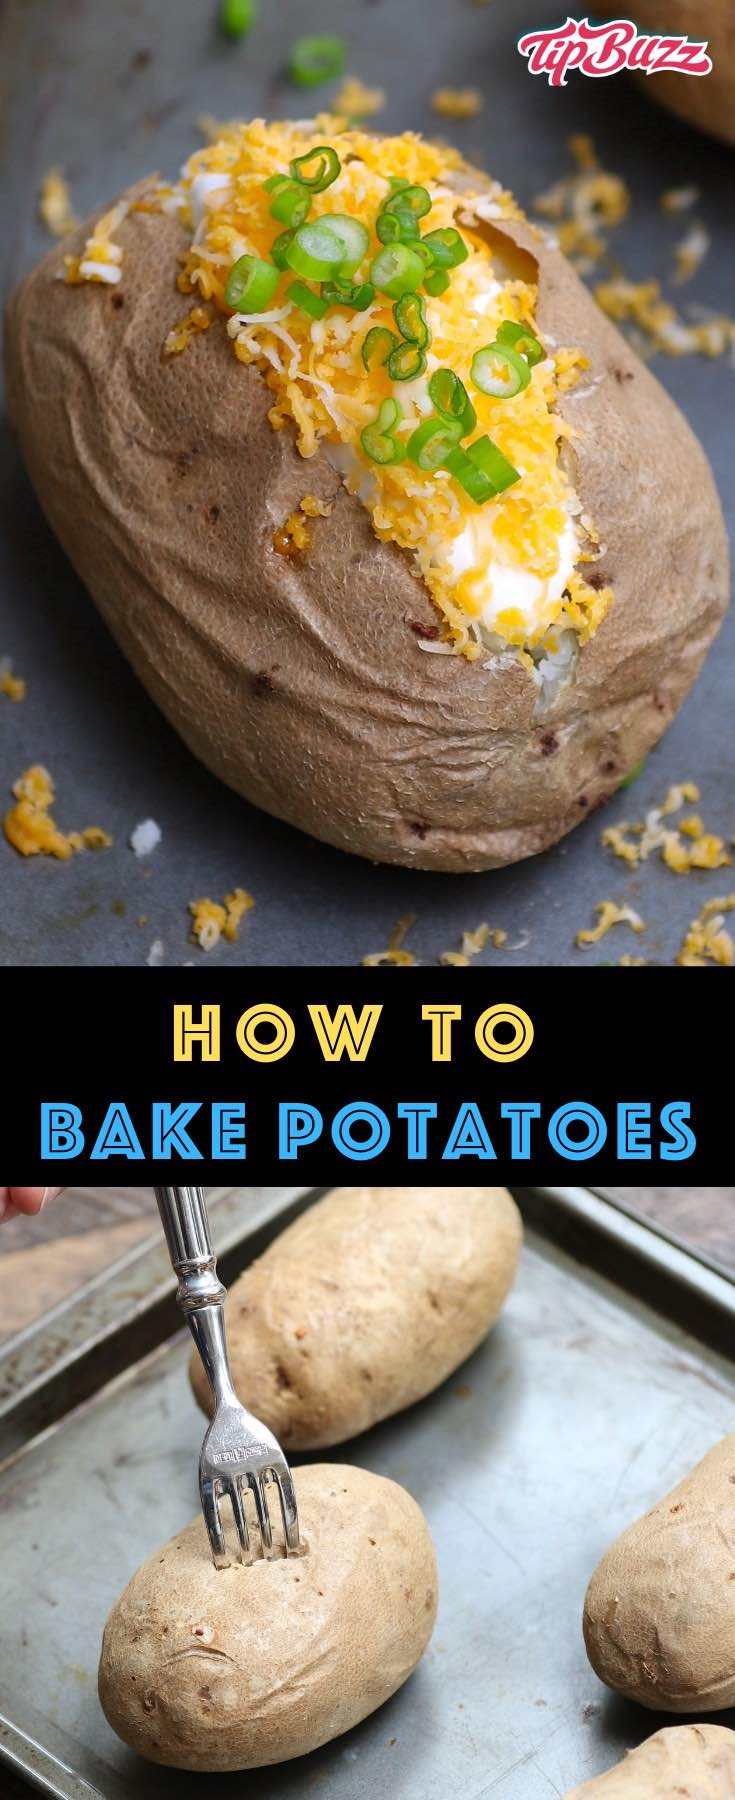 Make the perfect baked potato that's soft and fluffy with crispy skin! This easy recipe includes tips on how long to bake a potato for every oven temperature! #bakedpotato